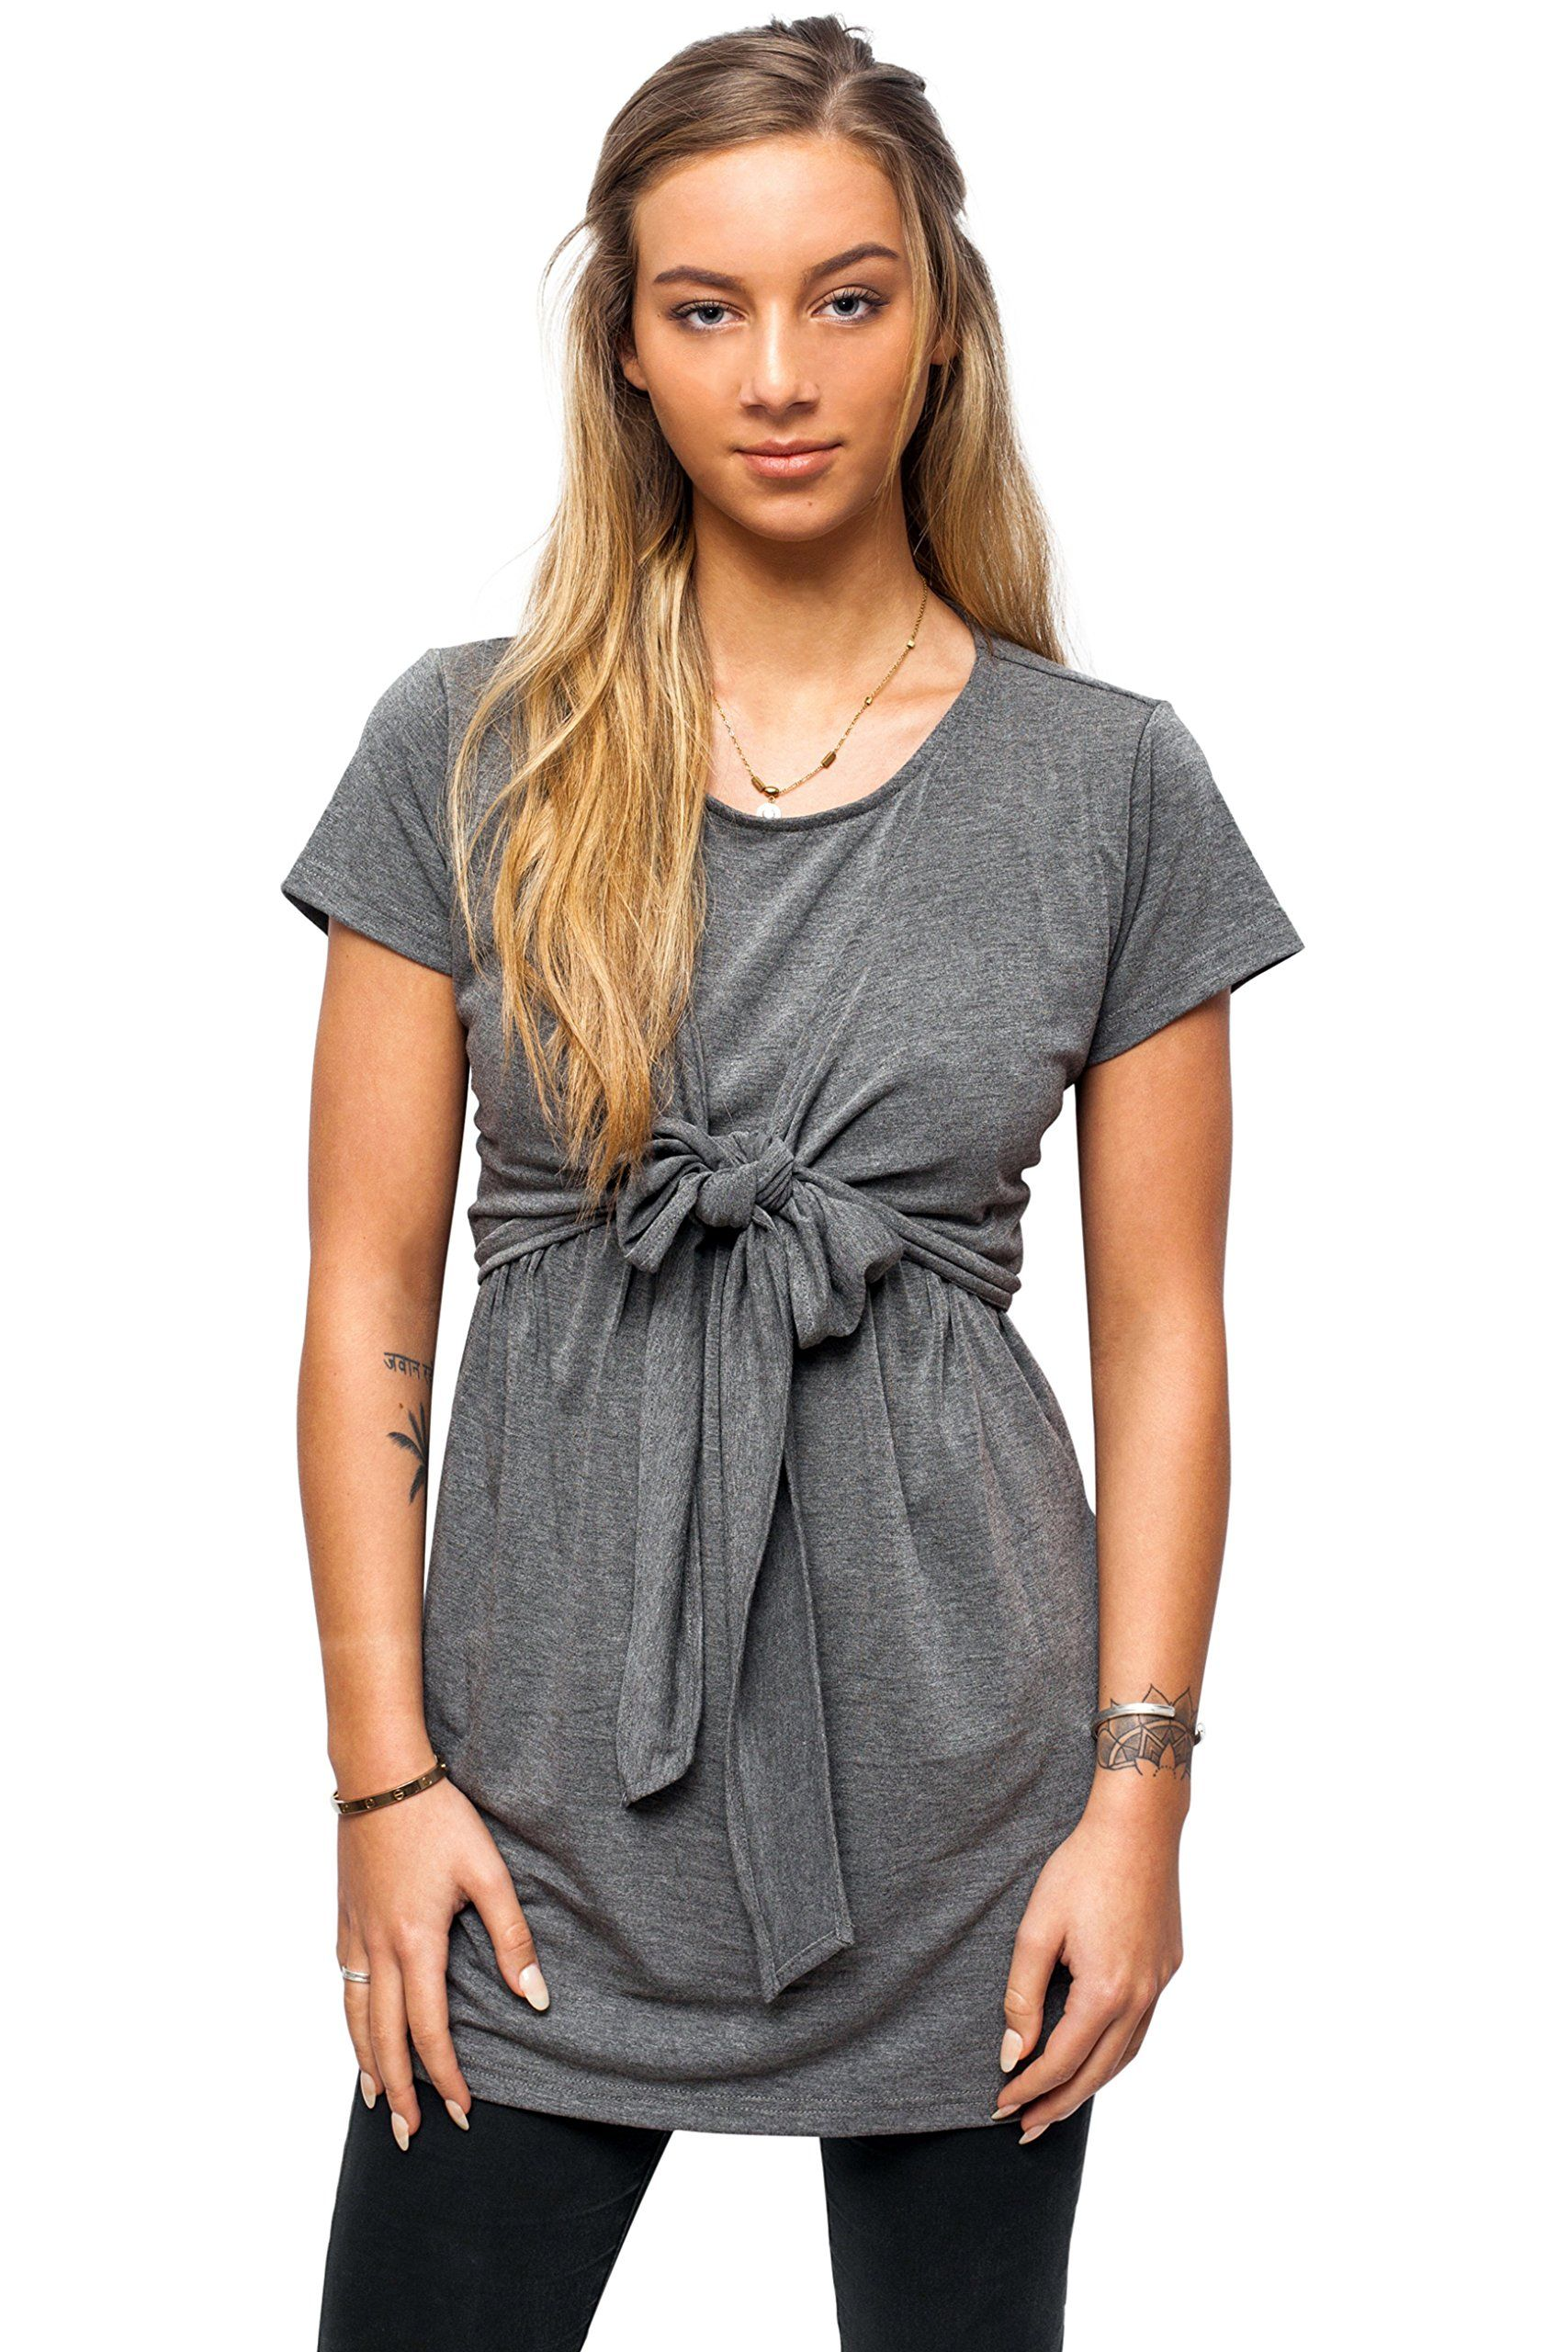 6aacf65557163 nursing tops - sofsy SoftTouch Rayon Blend Tie Front Nursing and Maternity  Fashion Top Charcoal Medium >>> Read more at the photo link.